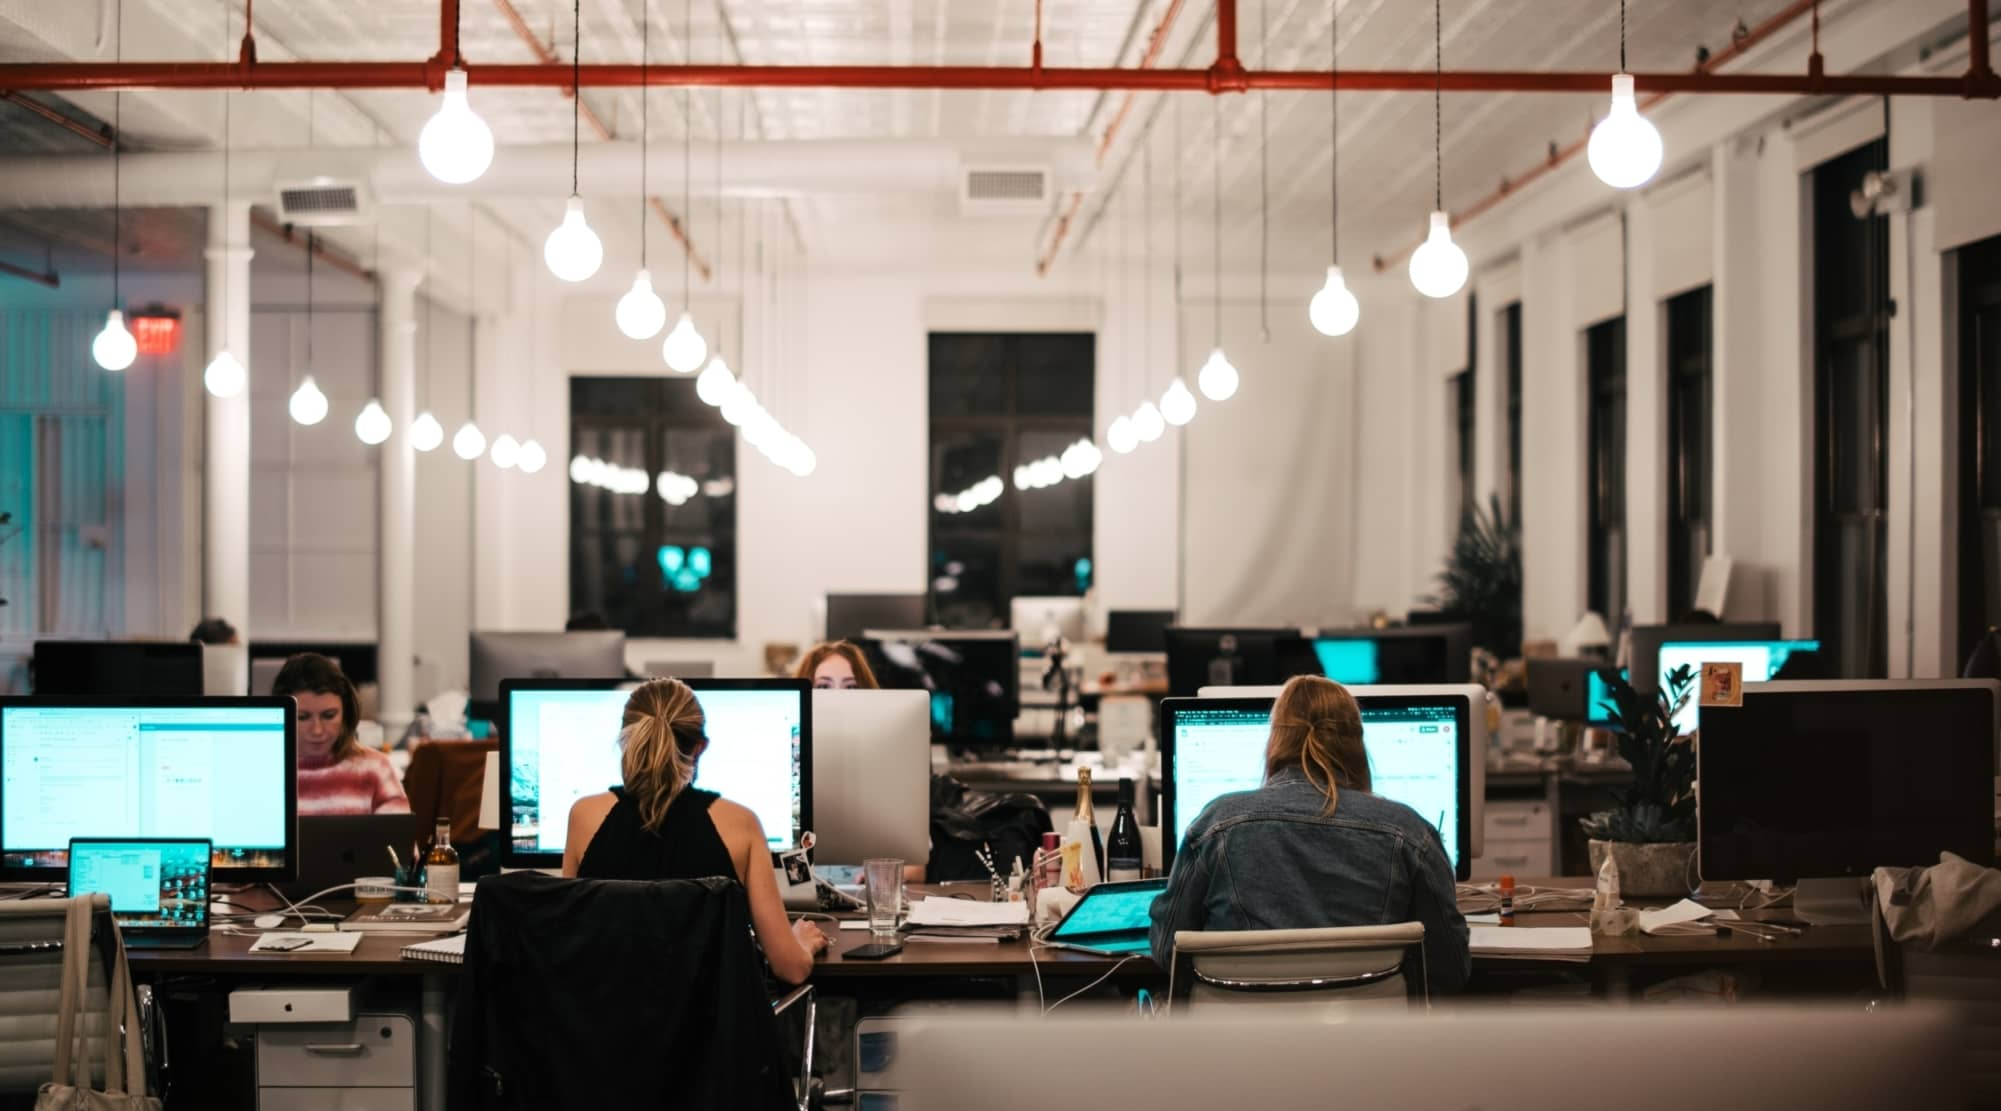 open office concept with employees working on projects at desks